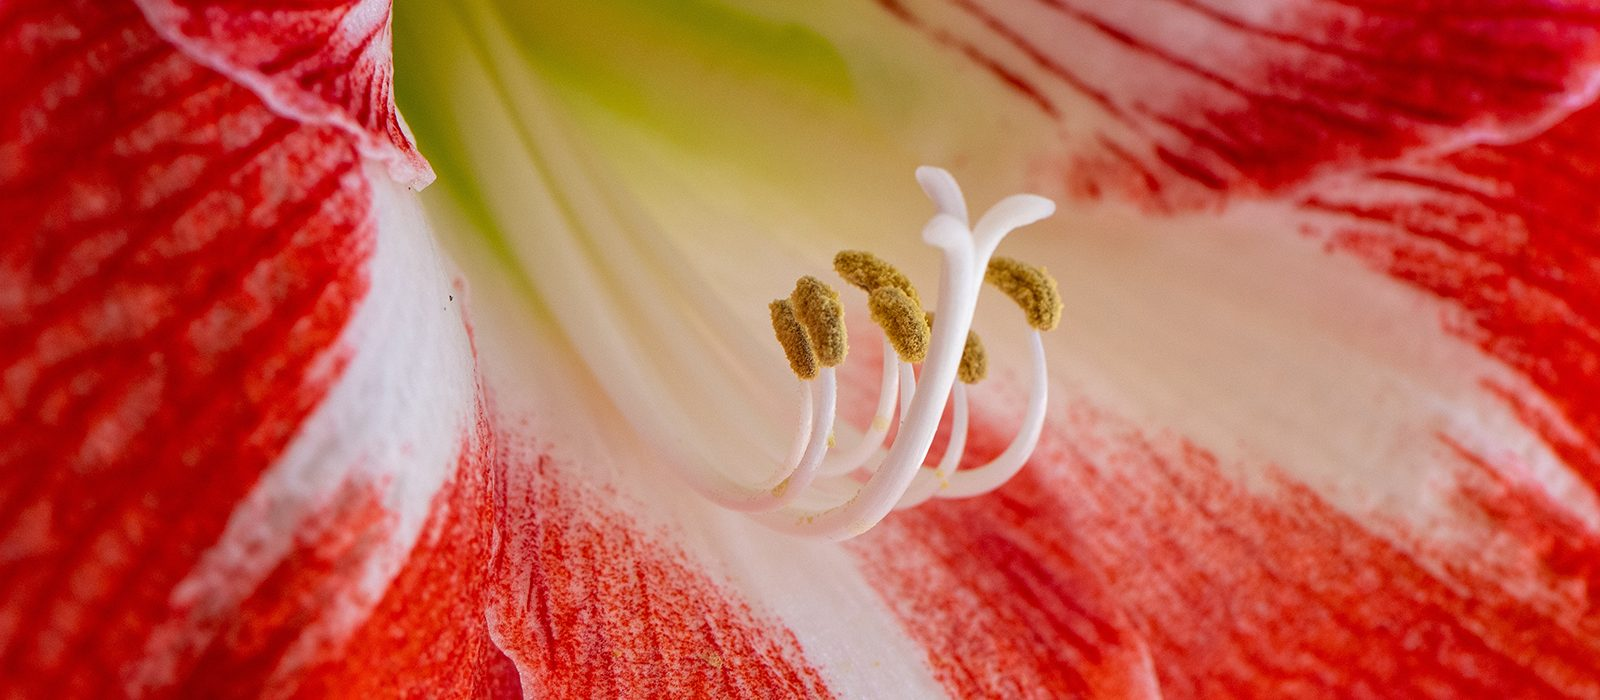 The Patient Love: Amaryllis